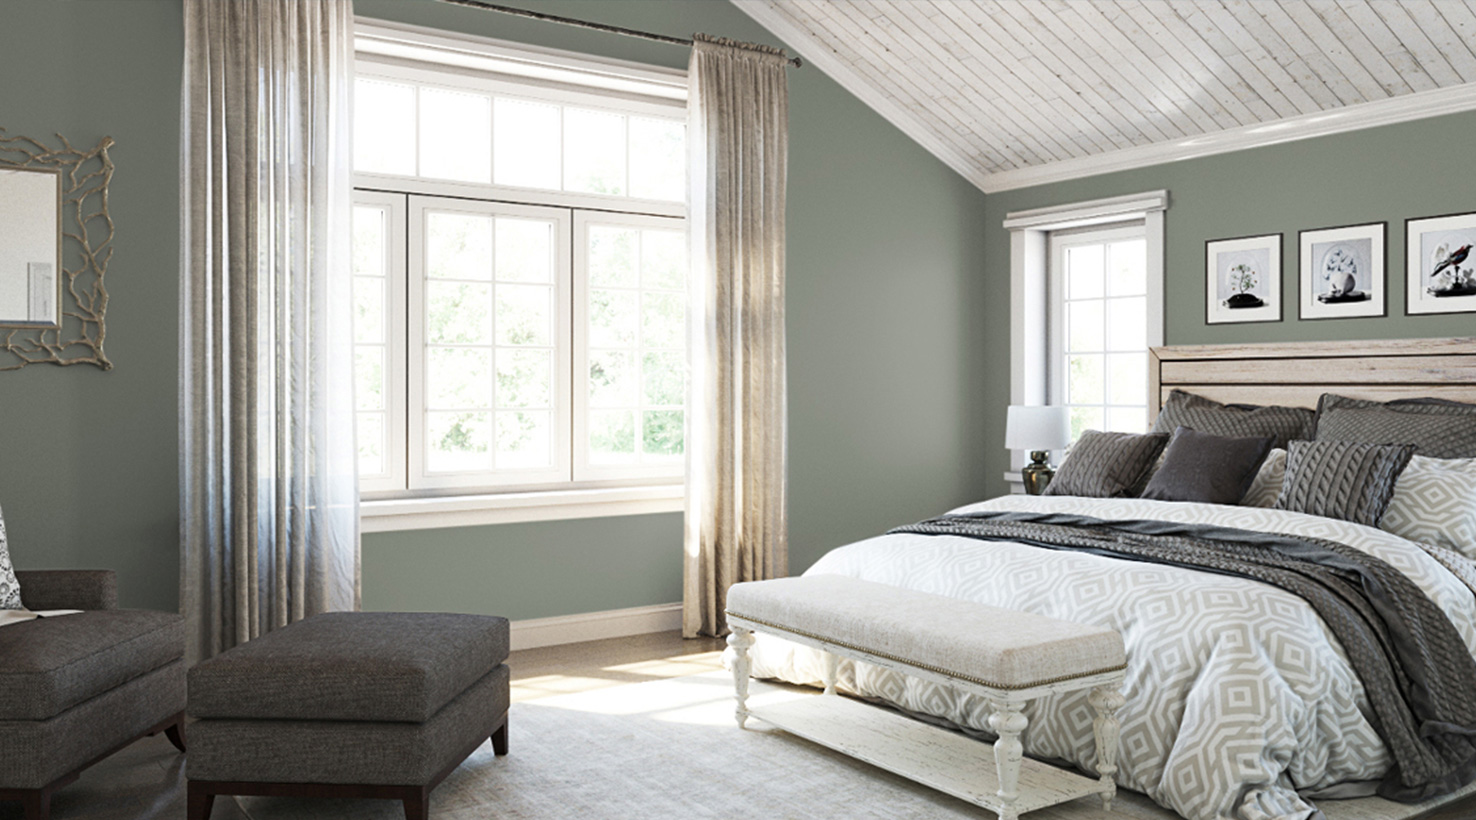 bedroom paint colors bedroom paint color ideas inspiration gallery sherwin williams 1365